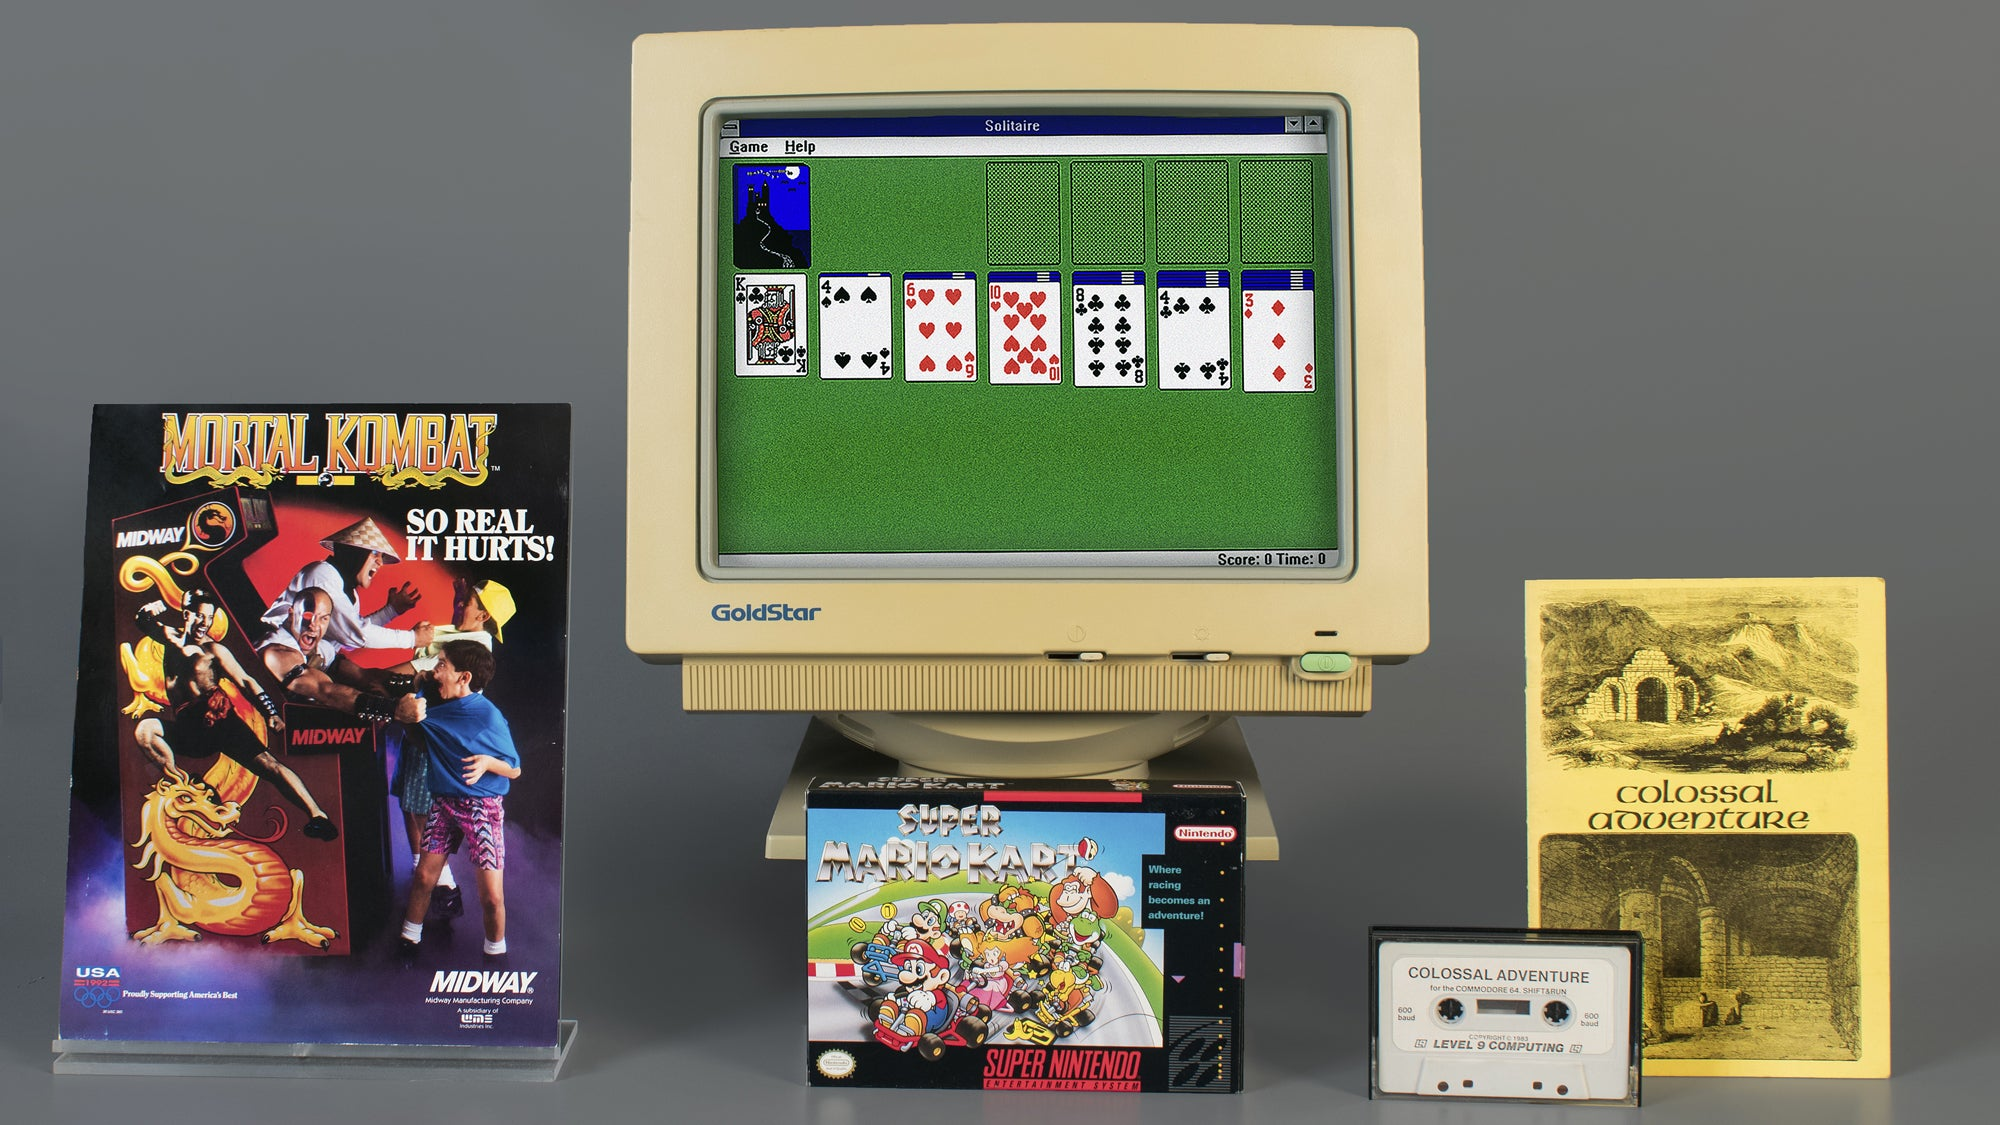 Microsoft's Solitaire Is Finally Getting Honoured In The Video Game Hall Of Fame